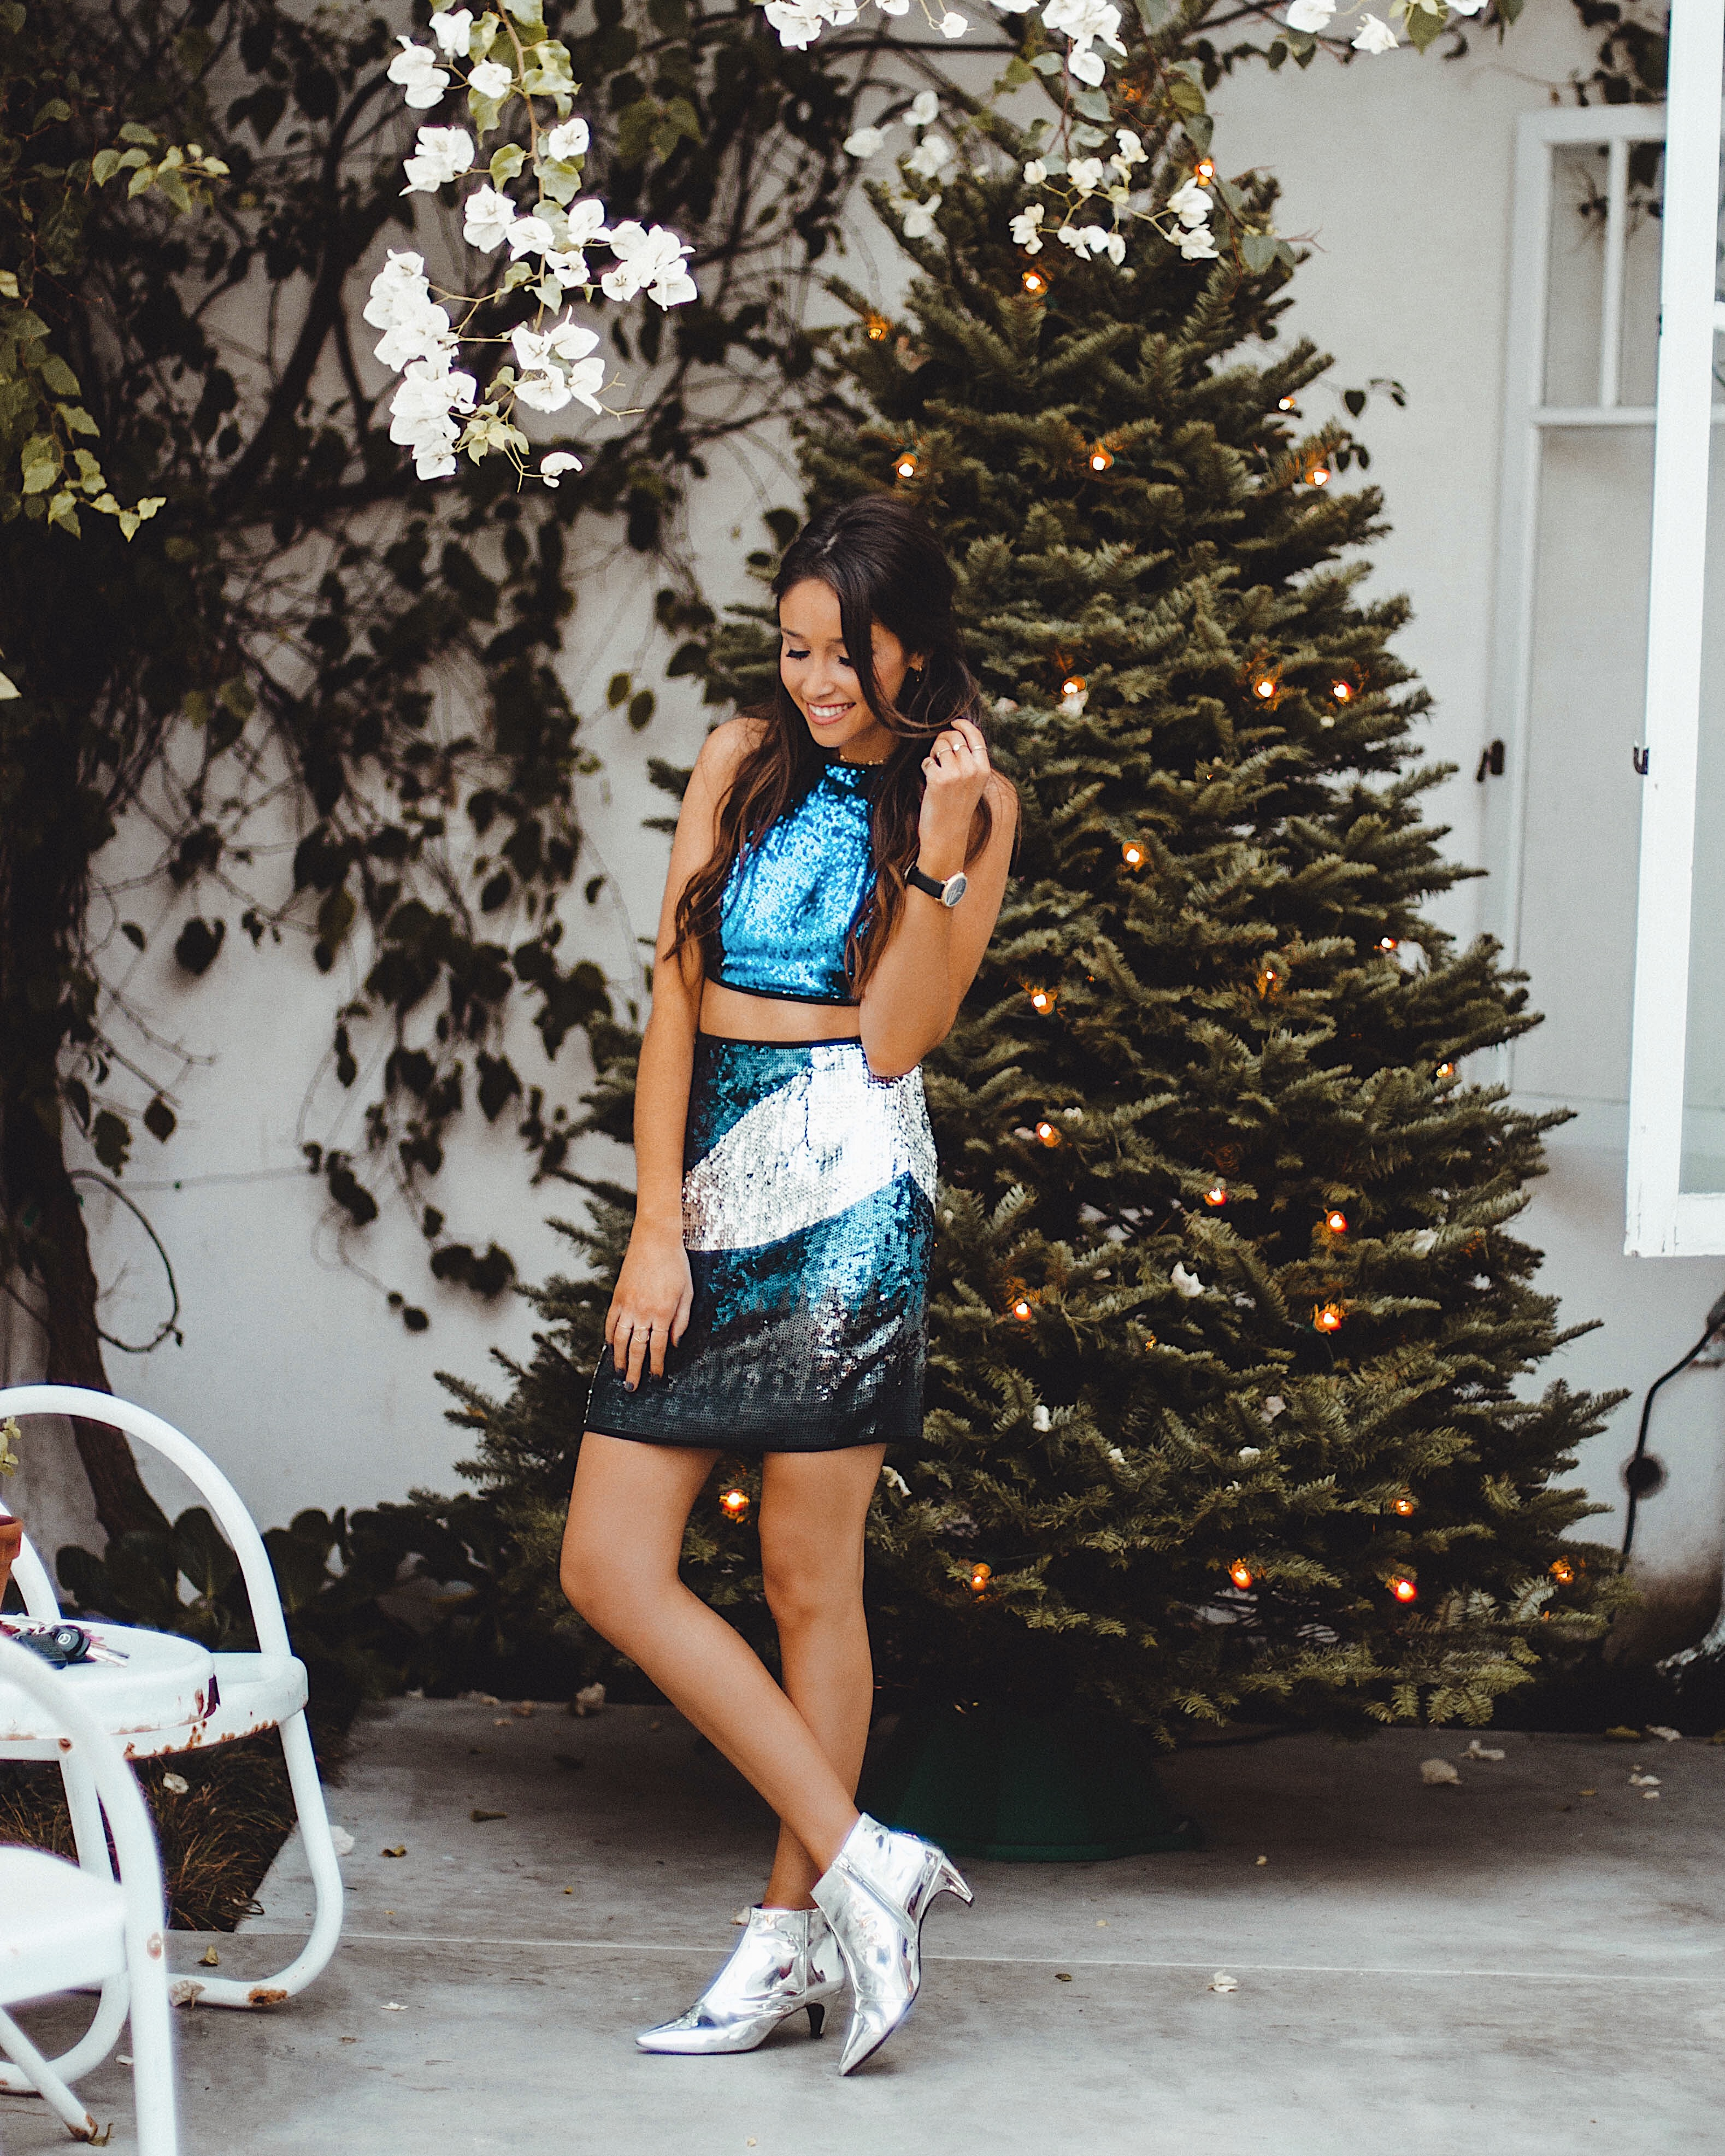 New Year's Eve outfit ideas by jami alix wearing Nasty Gal sparkly set